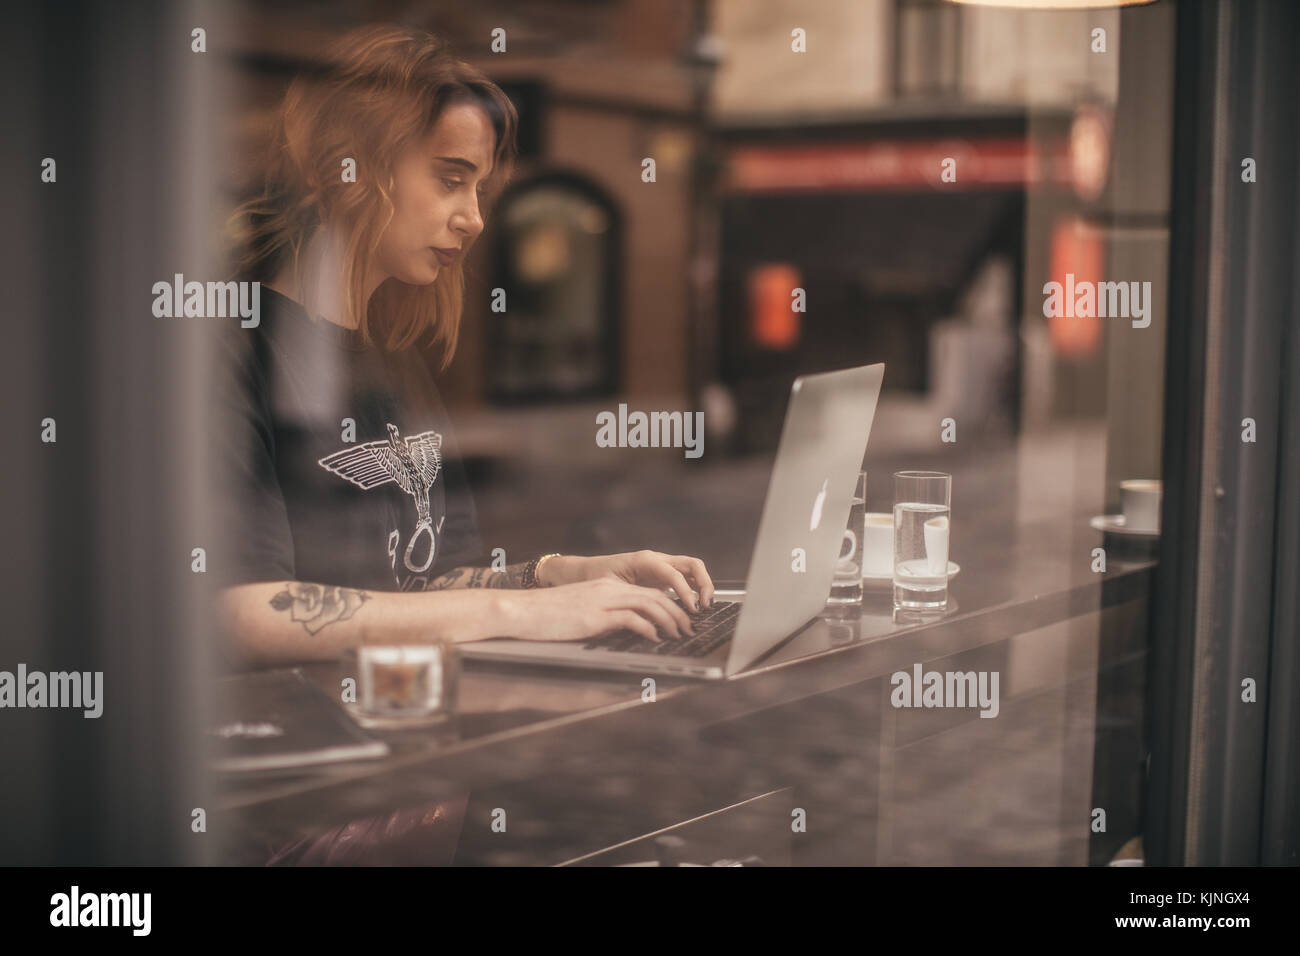 Pretty girl working on her lap top in a bar - Stock Image